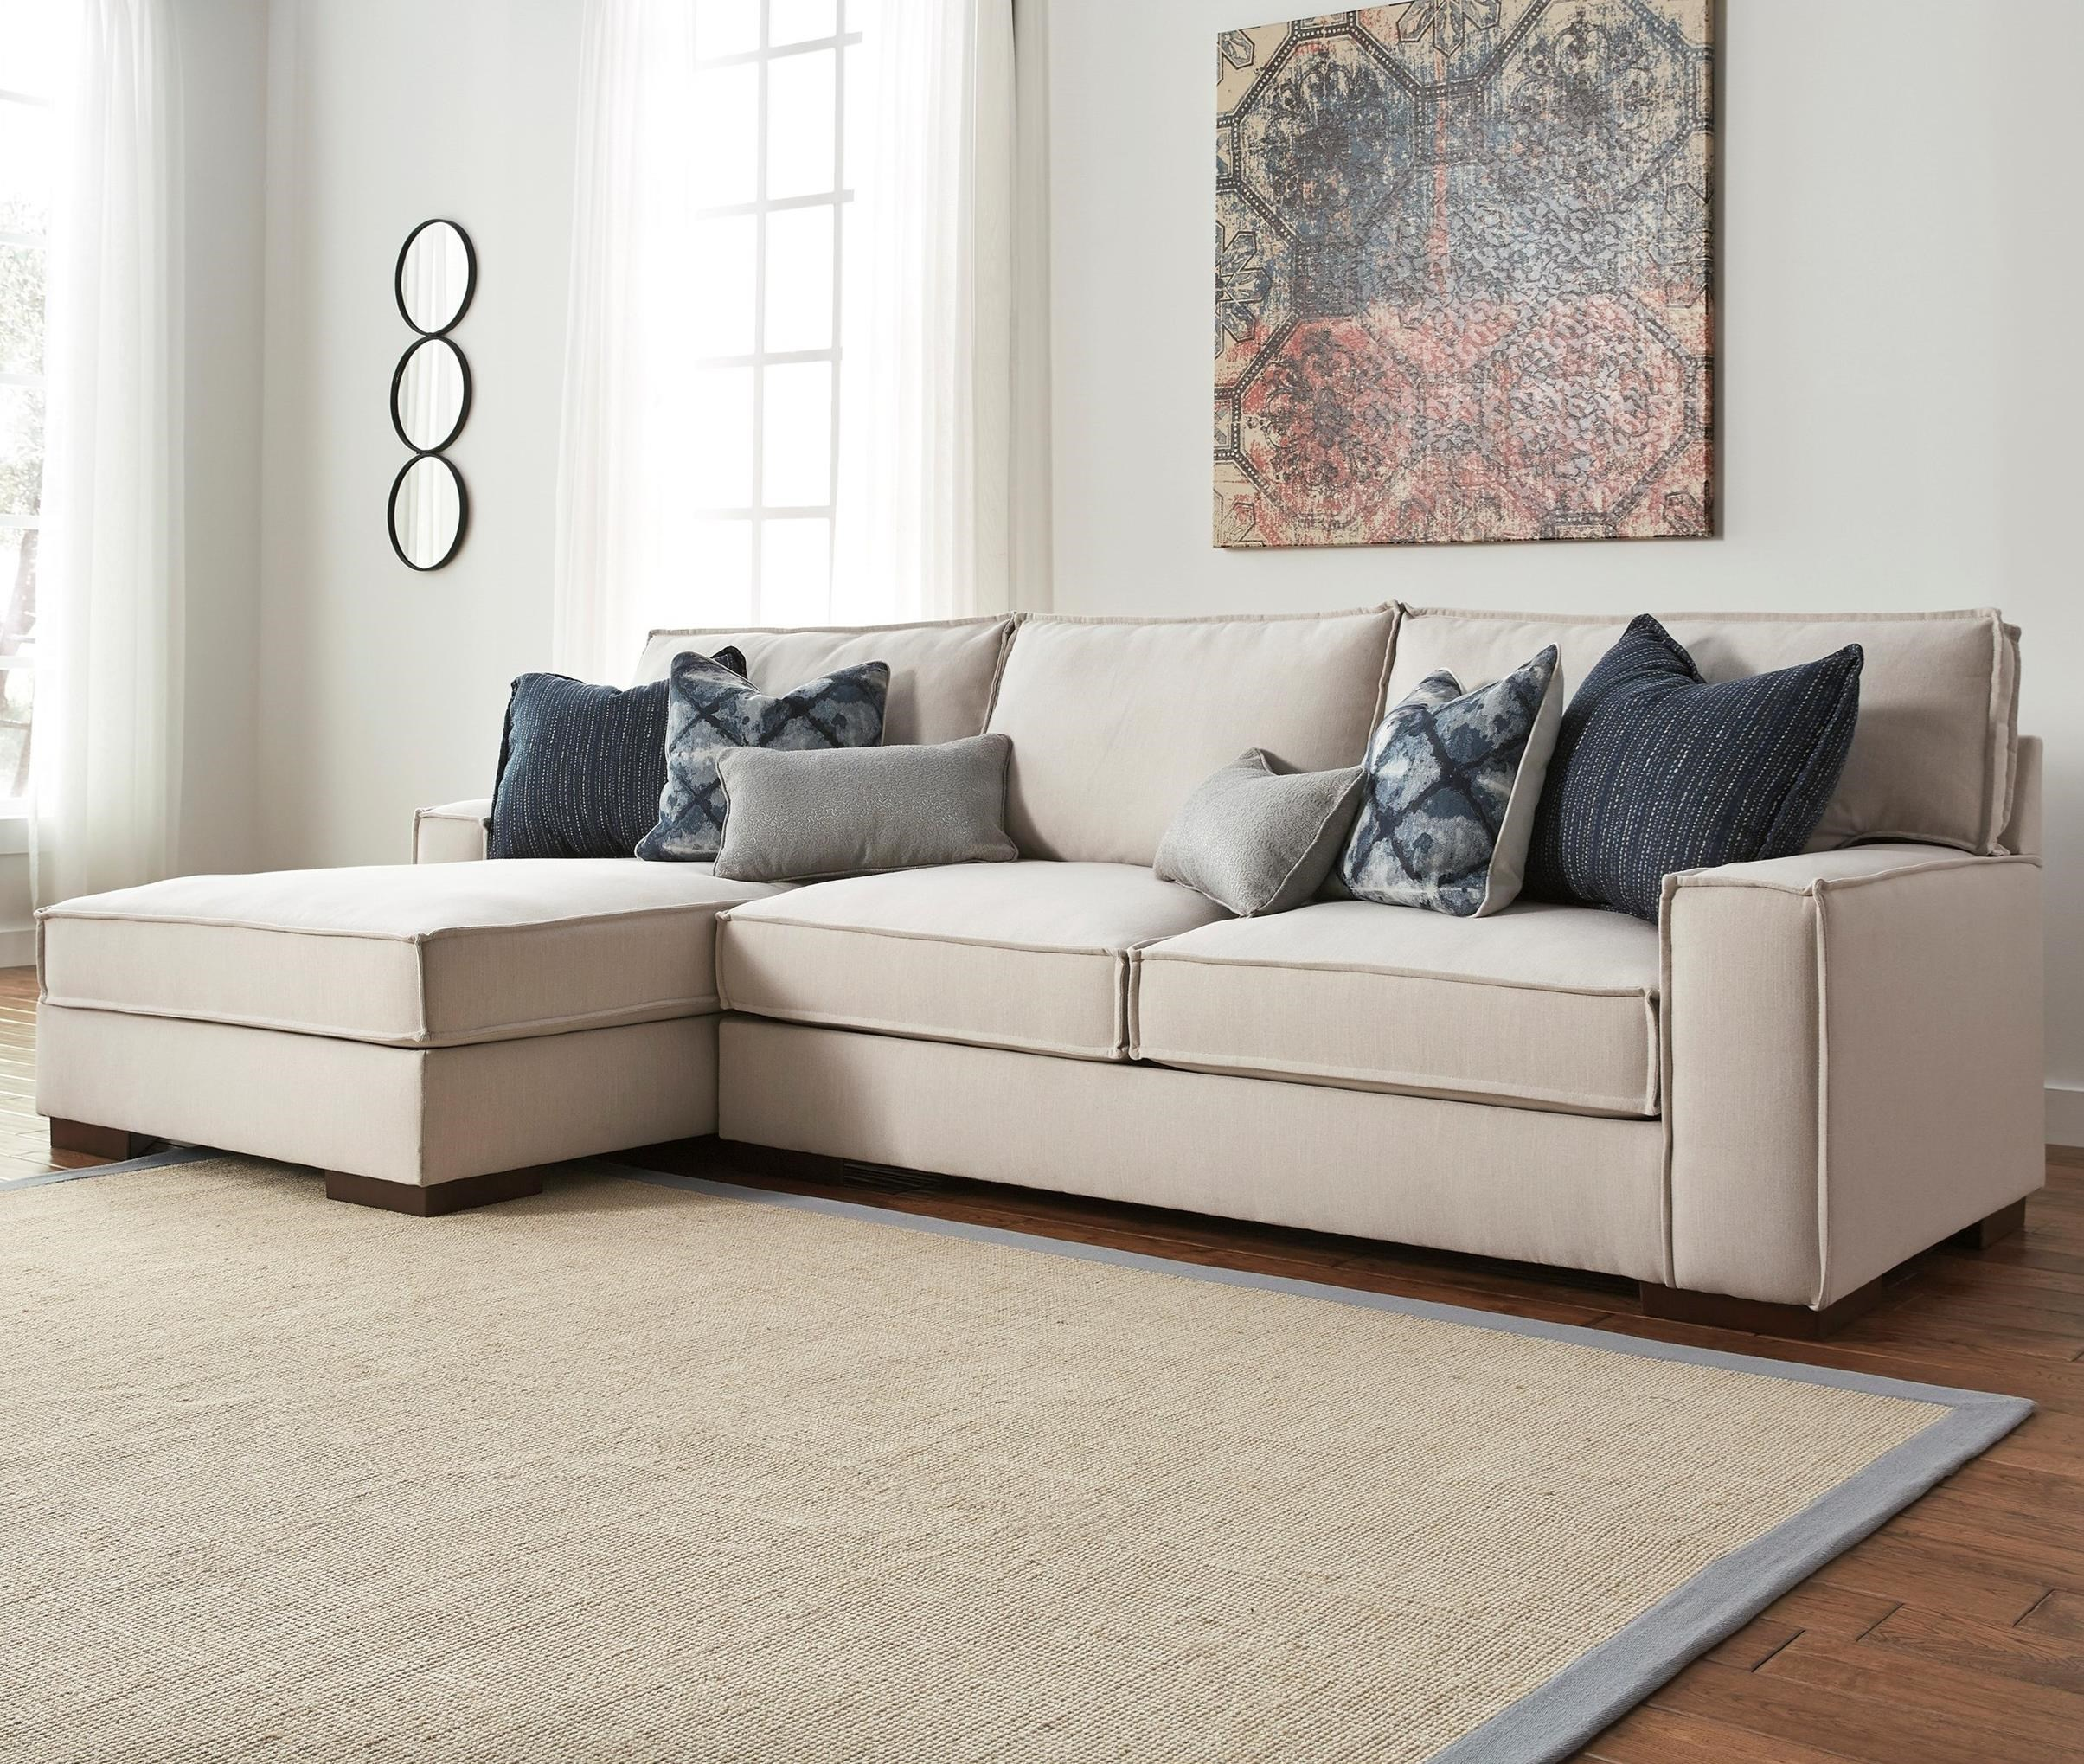 chaise place chocolate item products ashley with casual design left sofa sectional by jessa number signature